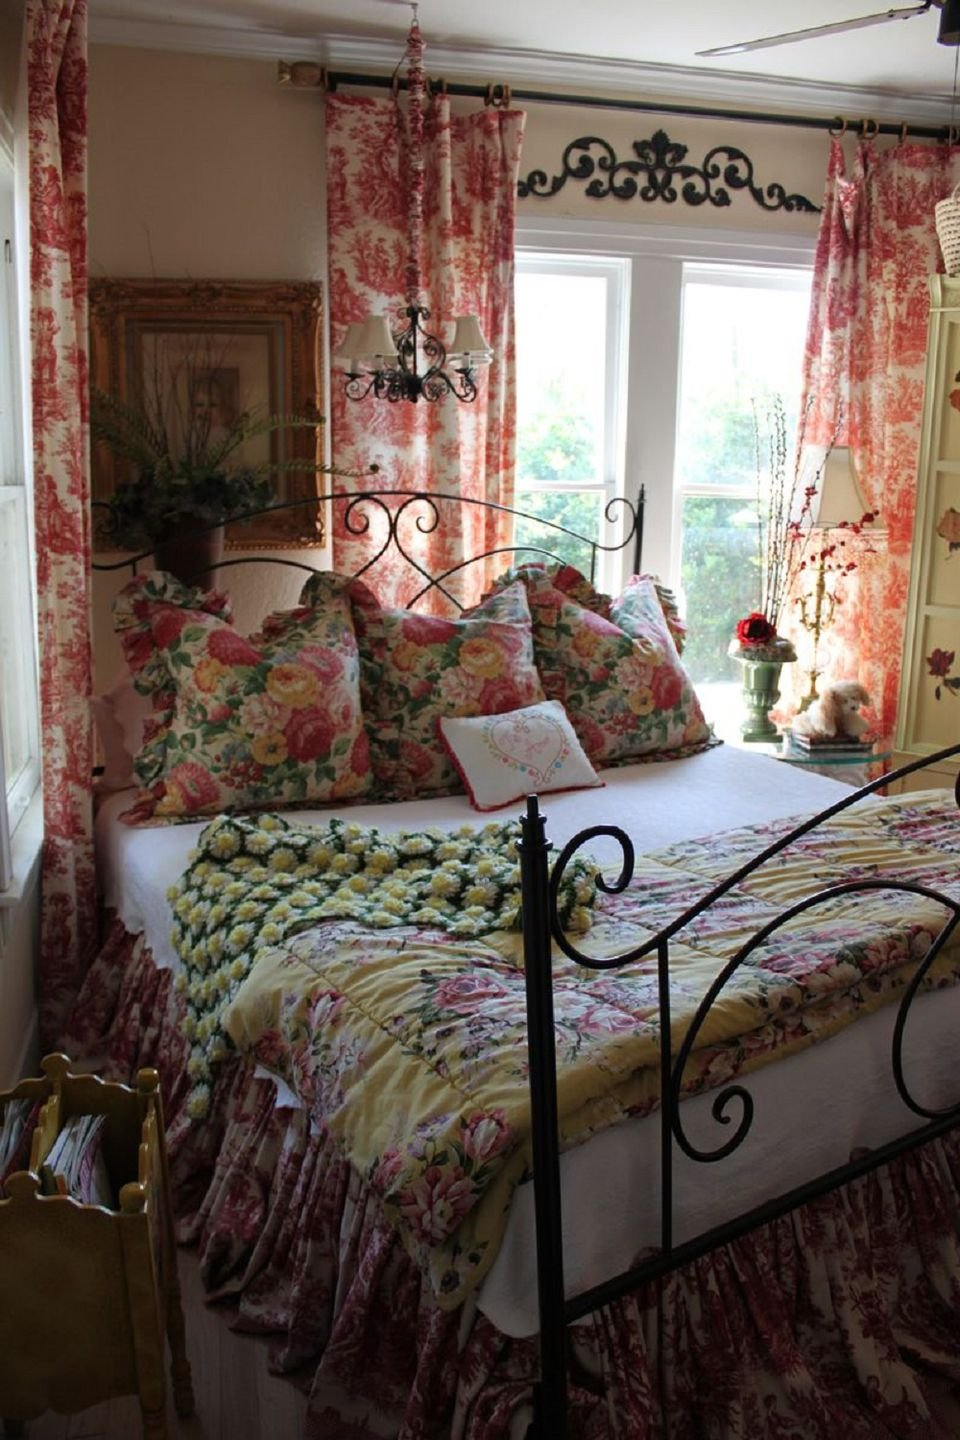 Toile Bedroom Decorating Ideas Toile Bedroom Decorating Microfiber Office Chairs For Bad Backs